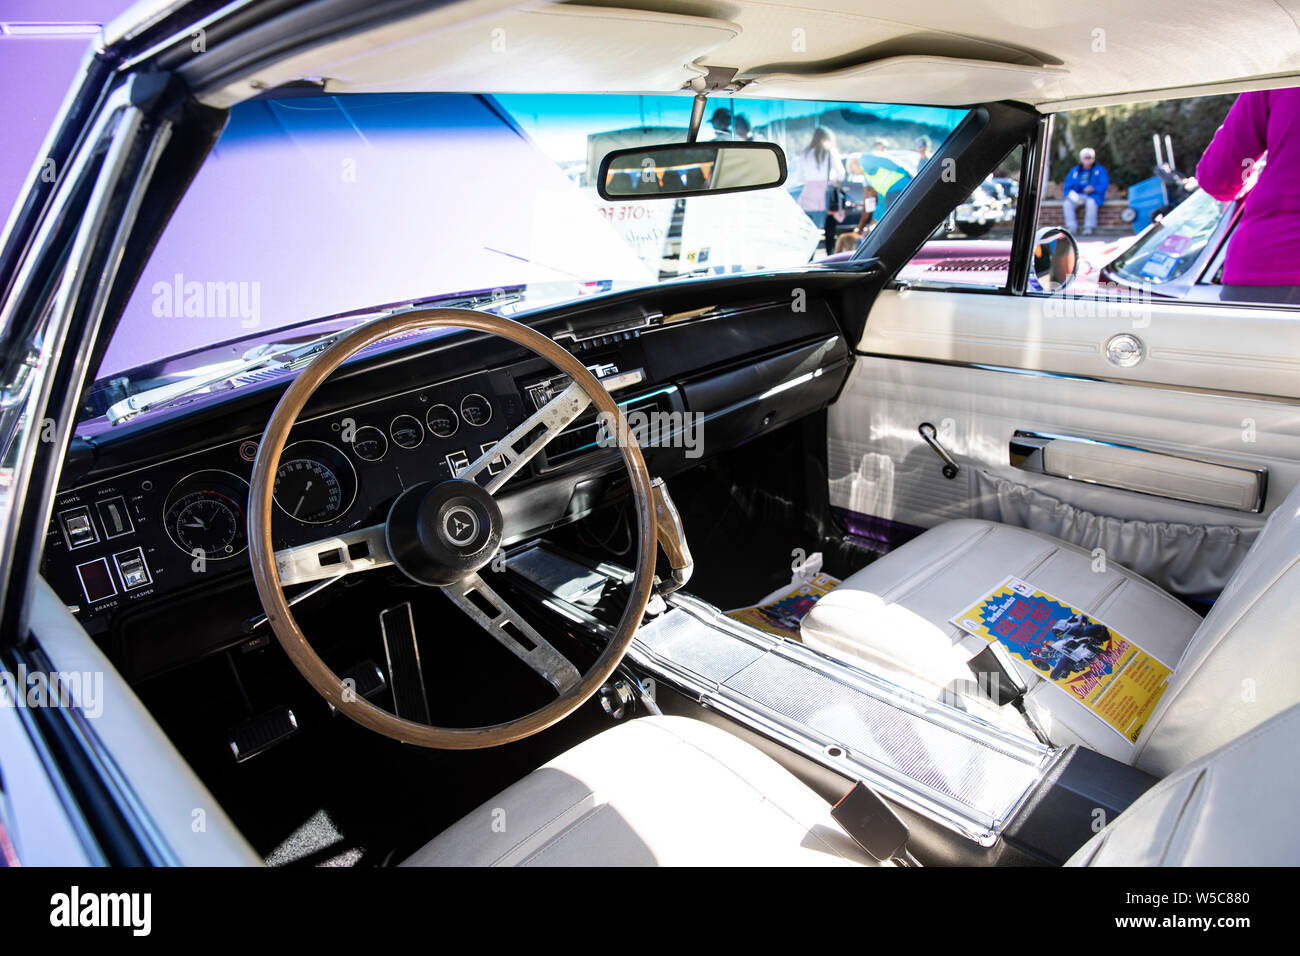 Car Interior 1968 Dodge Charger Rt 440 Classic American Muscle Car On Display At A Classic Car Show In Newport Sydney Australia Stock Photo Alamy